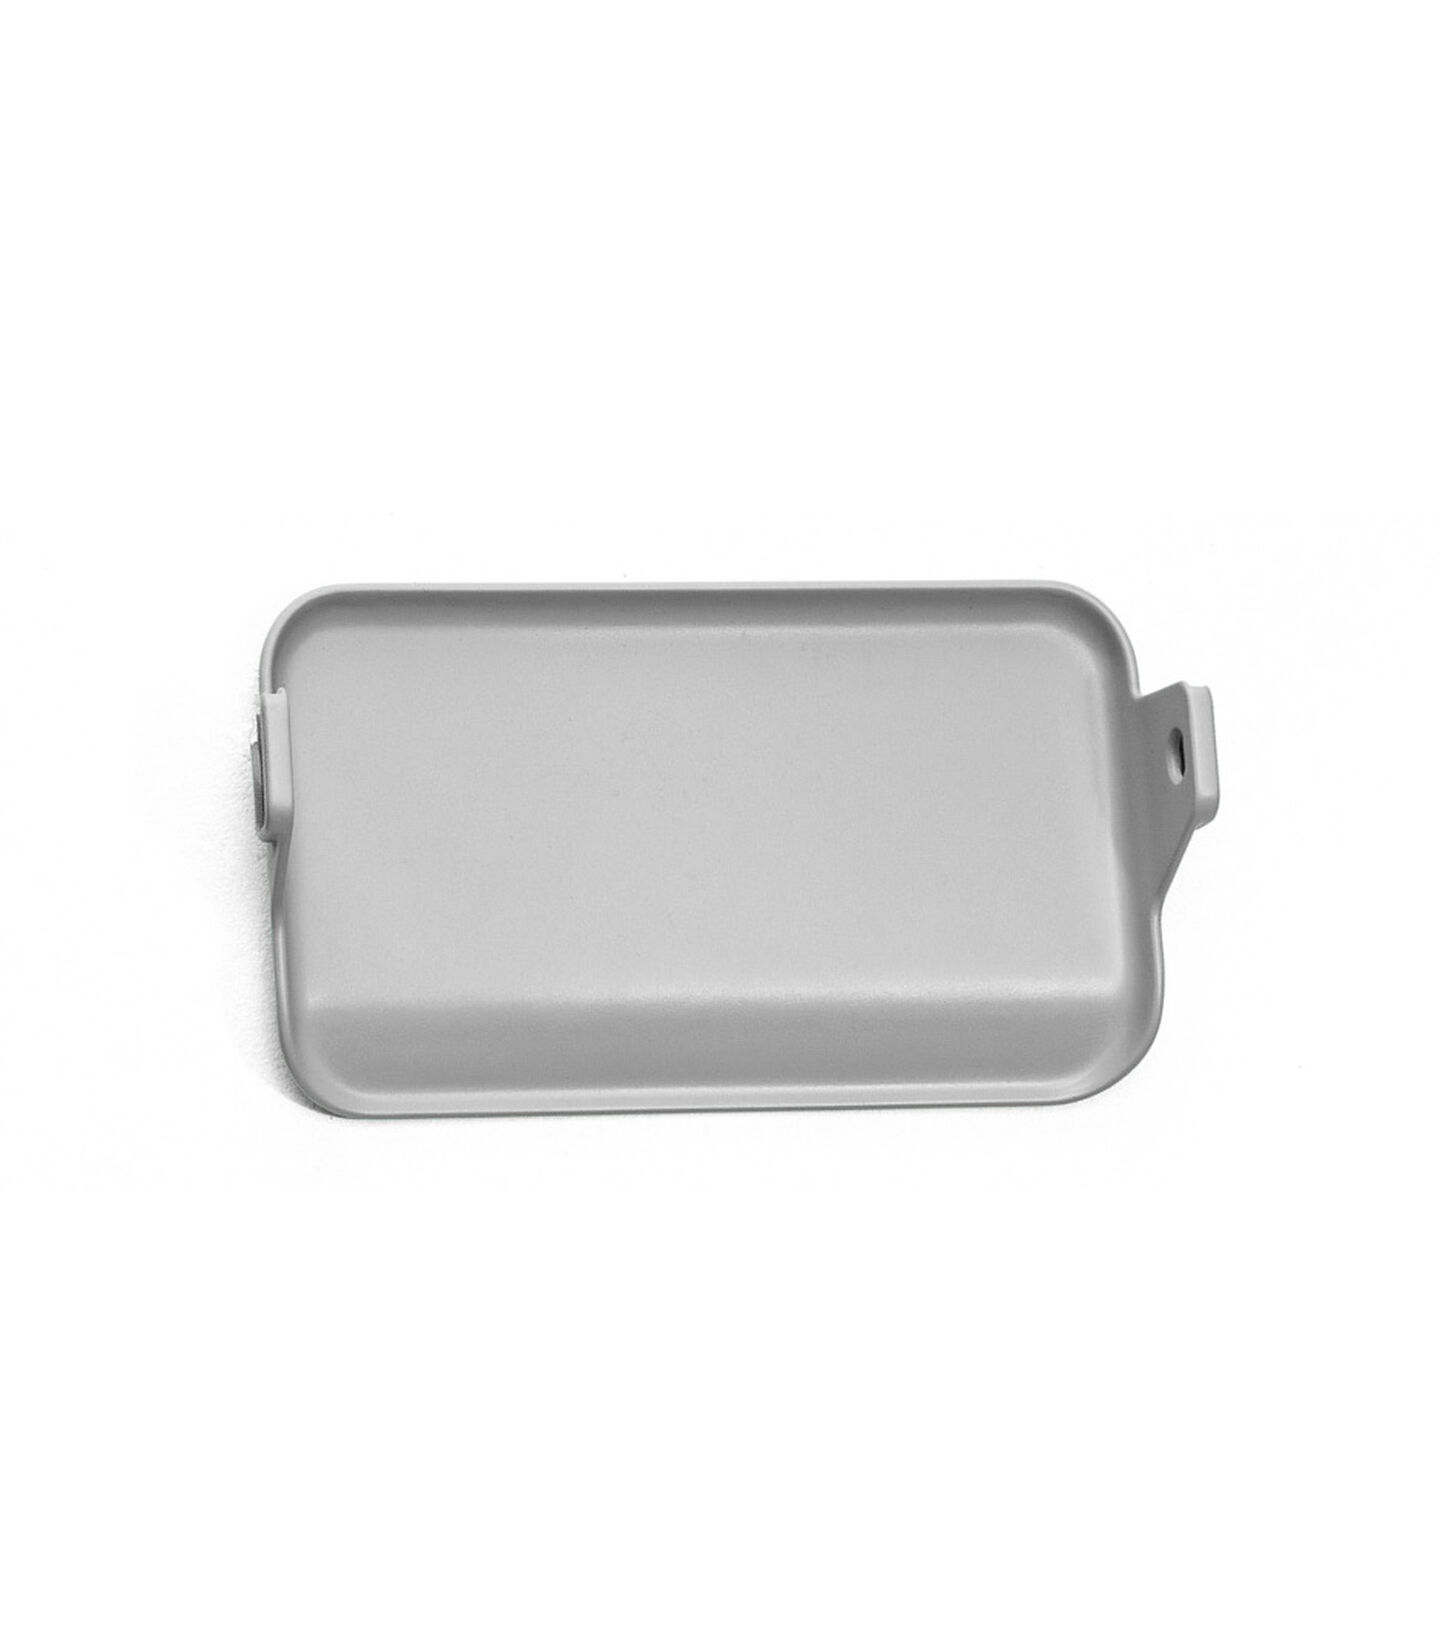 Stokke® Clikk™ Foot Plate in Cloud Grey. Available as Spare part. view 2